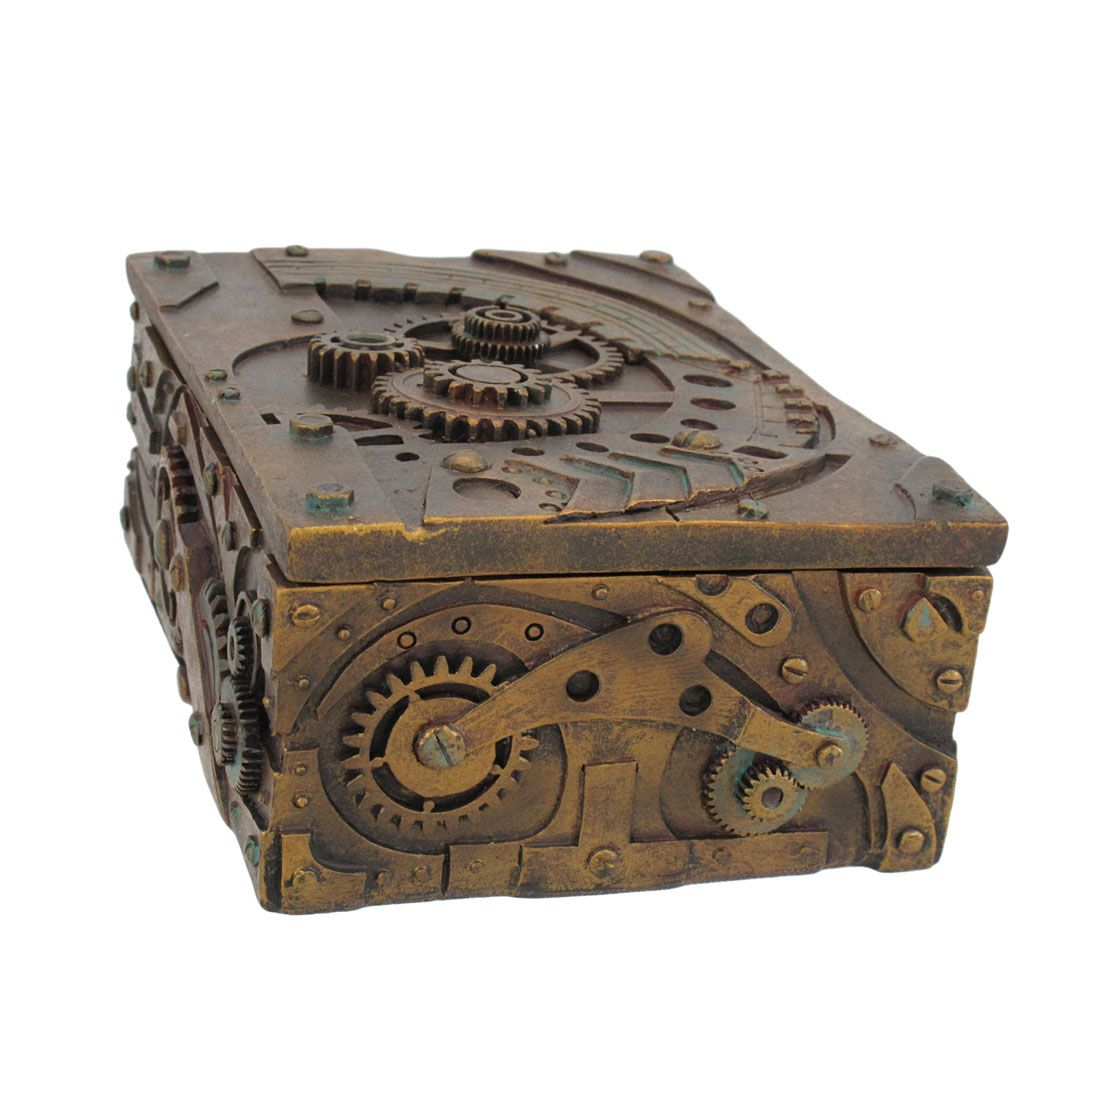 Steampunk Trinket Jewelry Box Steam Punk Stash Steam punk Punk